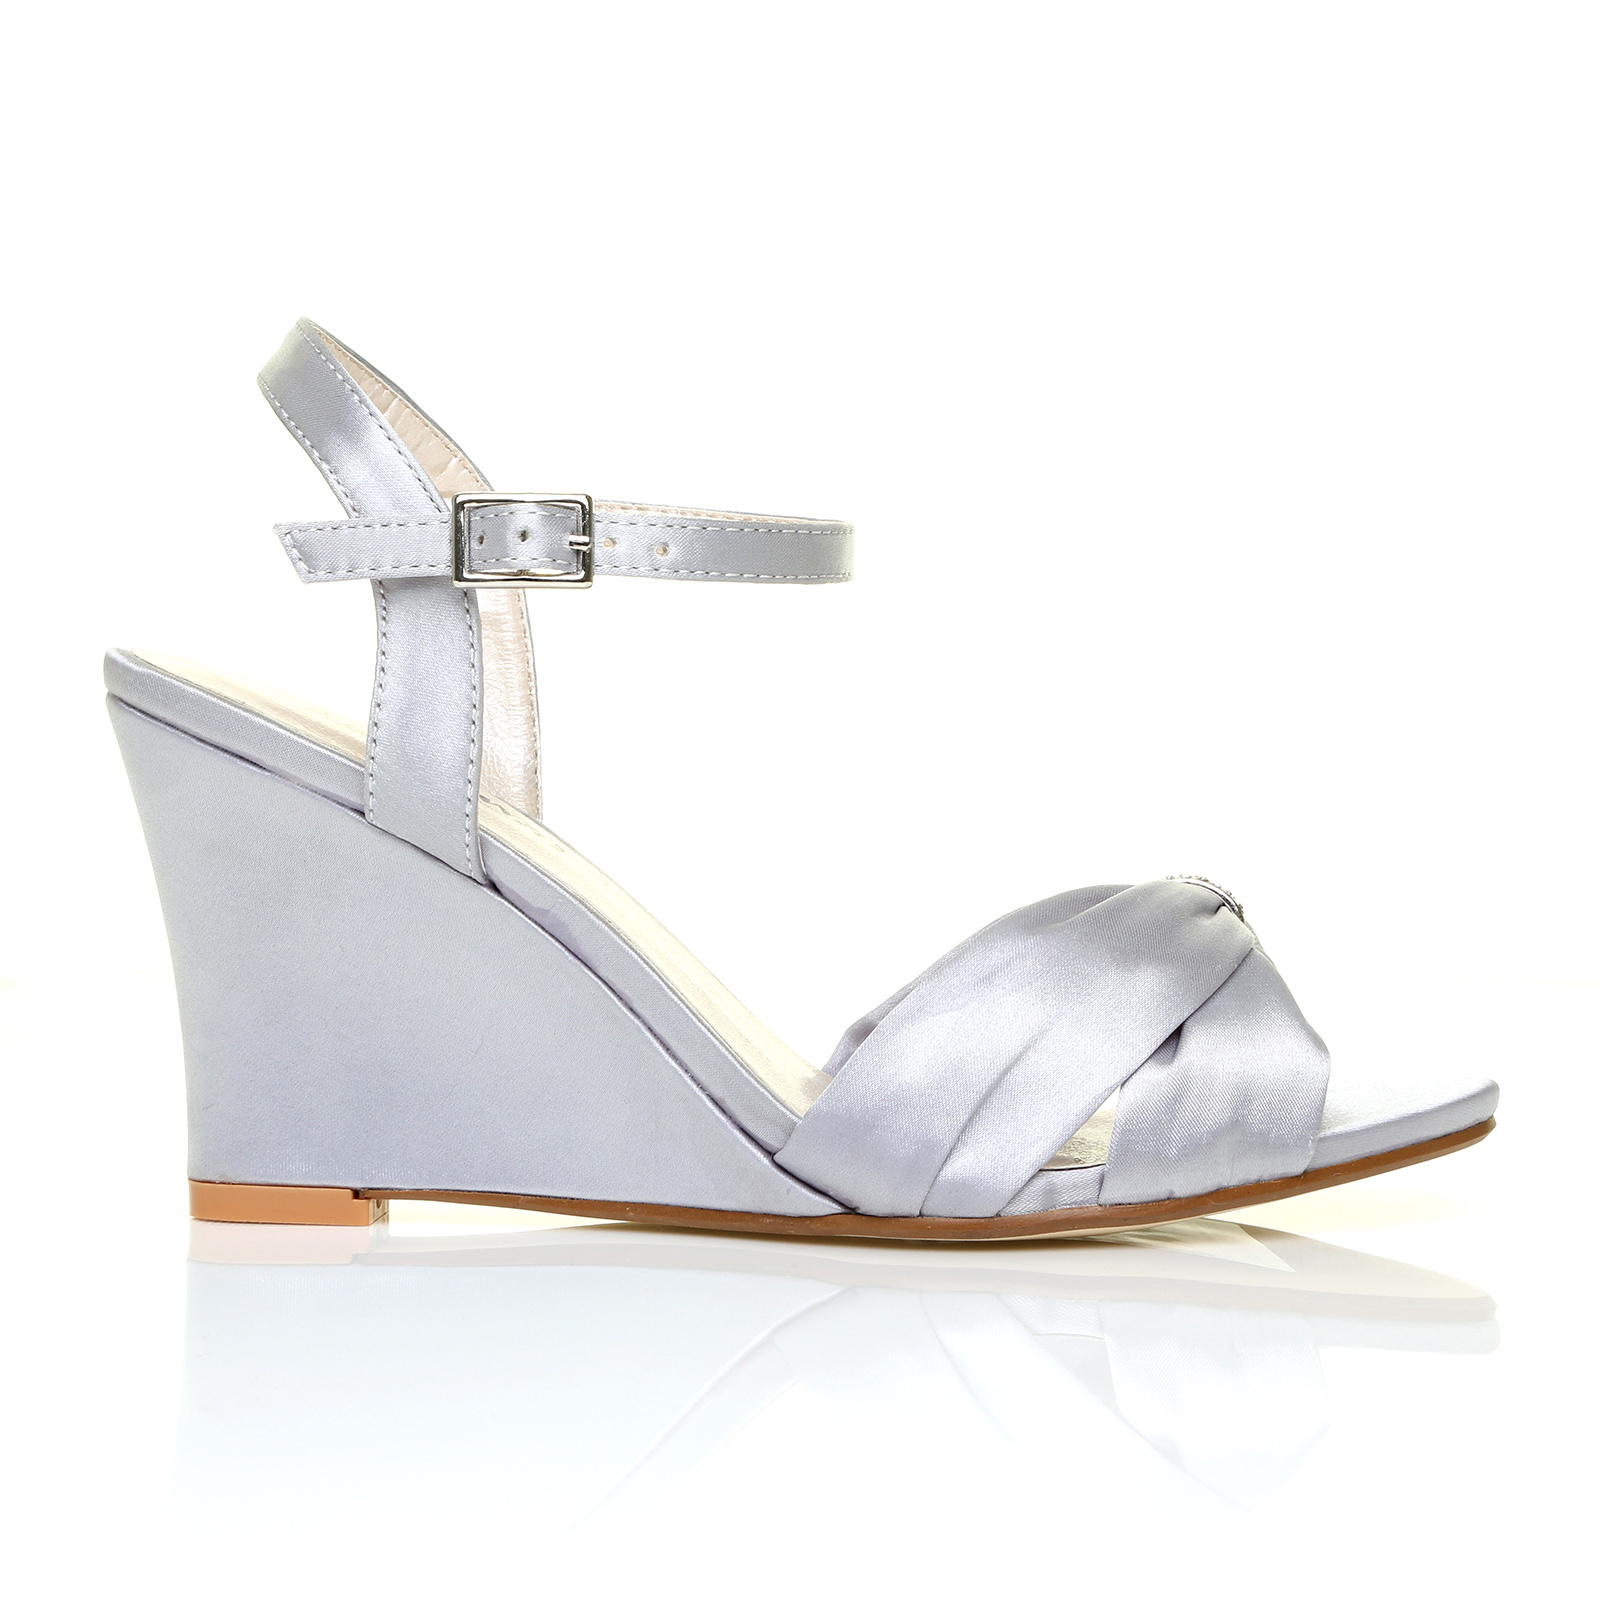 Silver wedge heels for prom